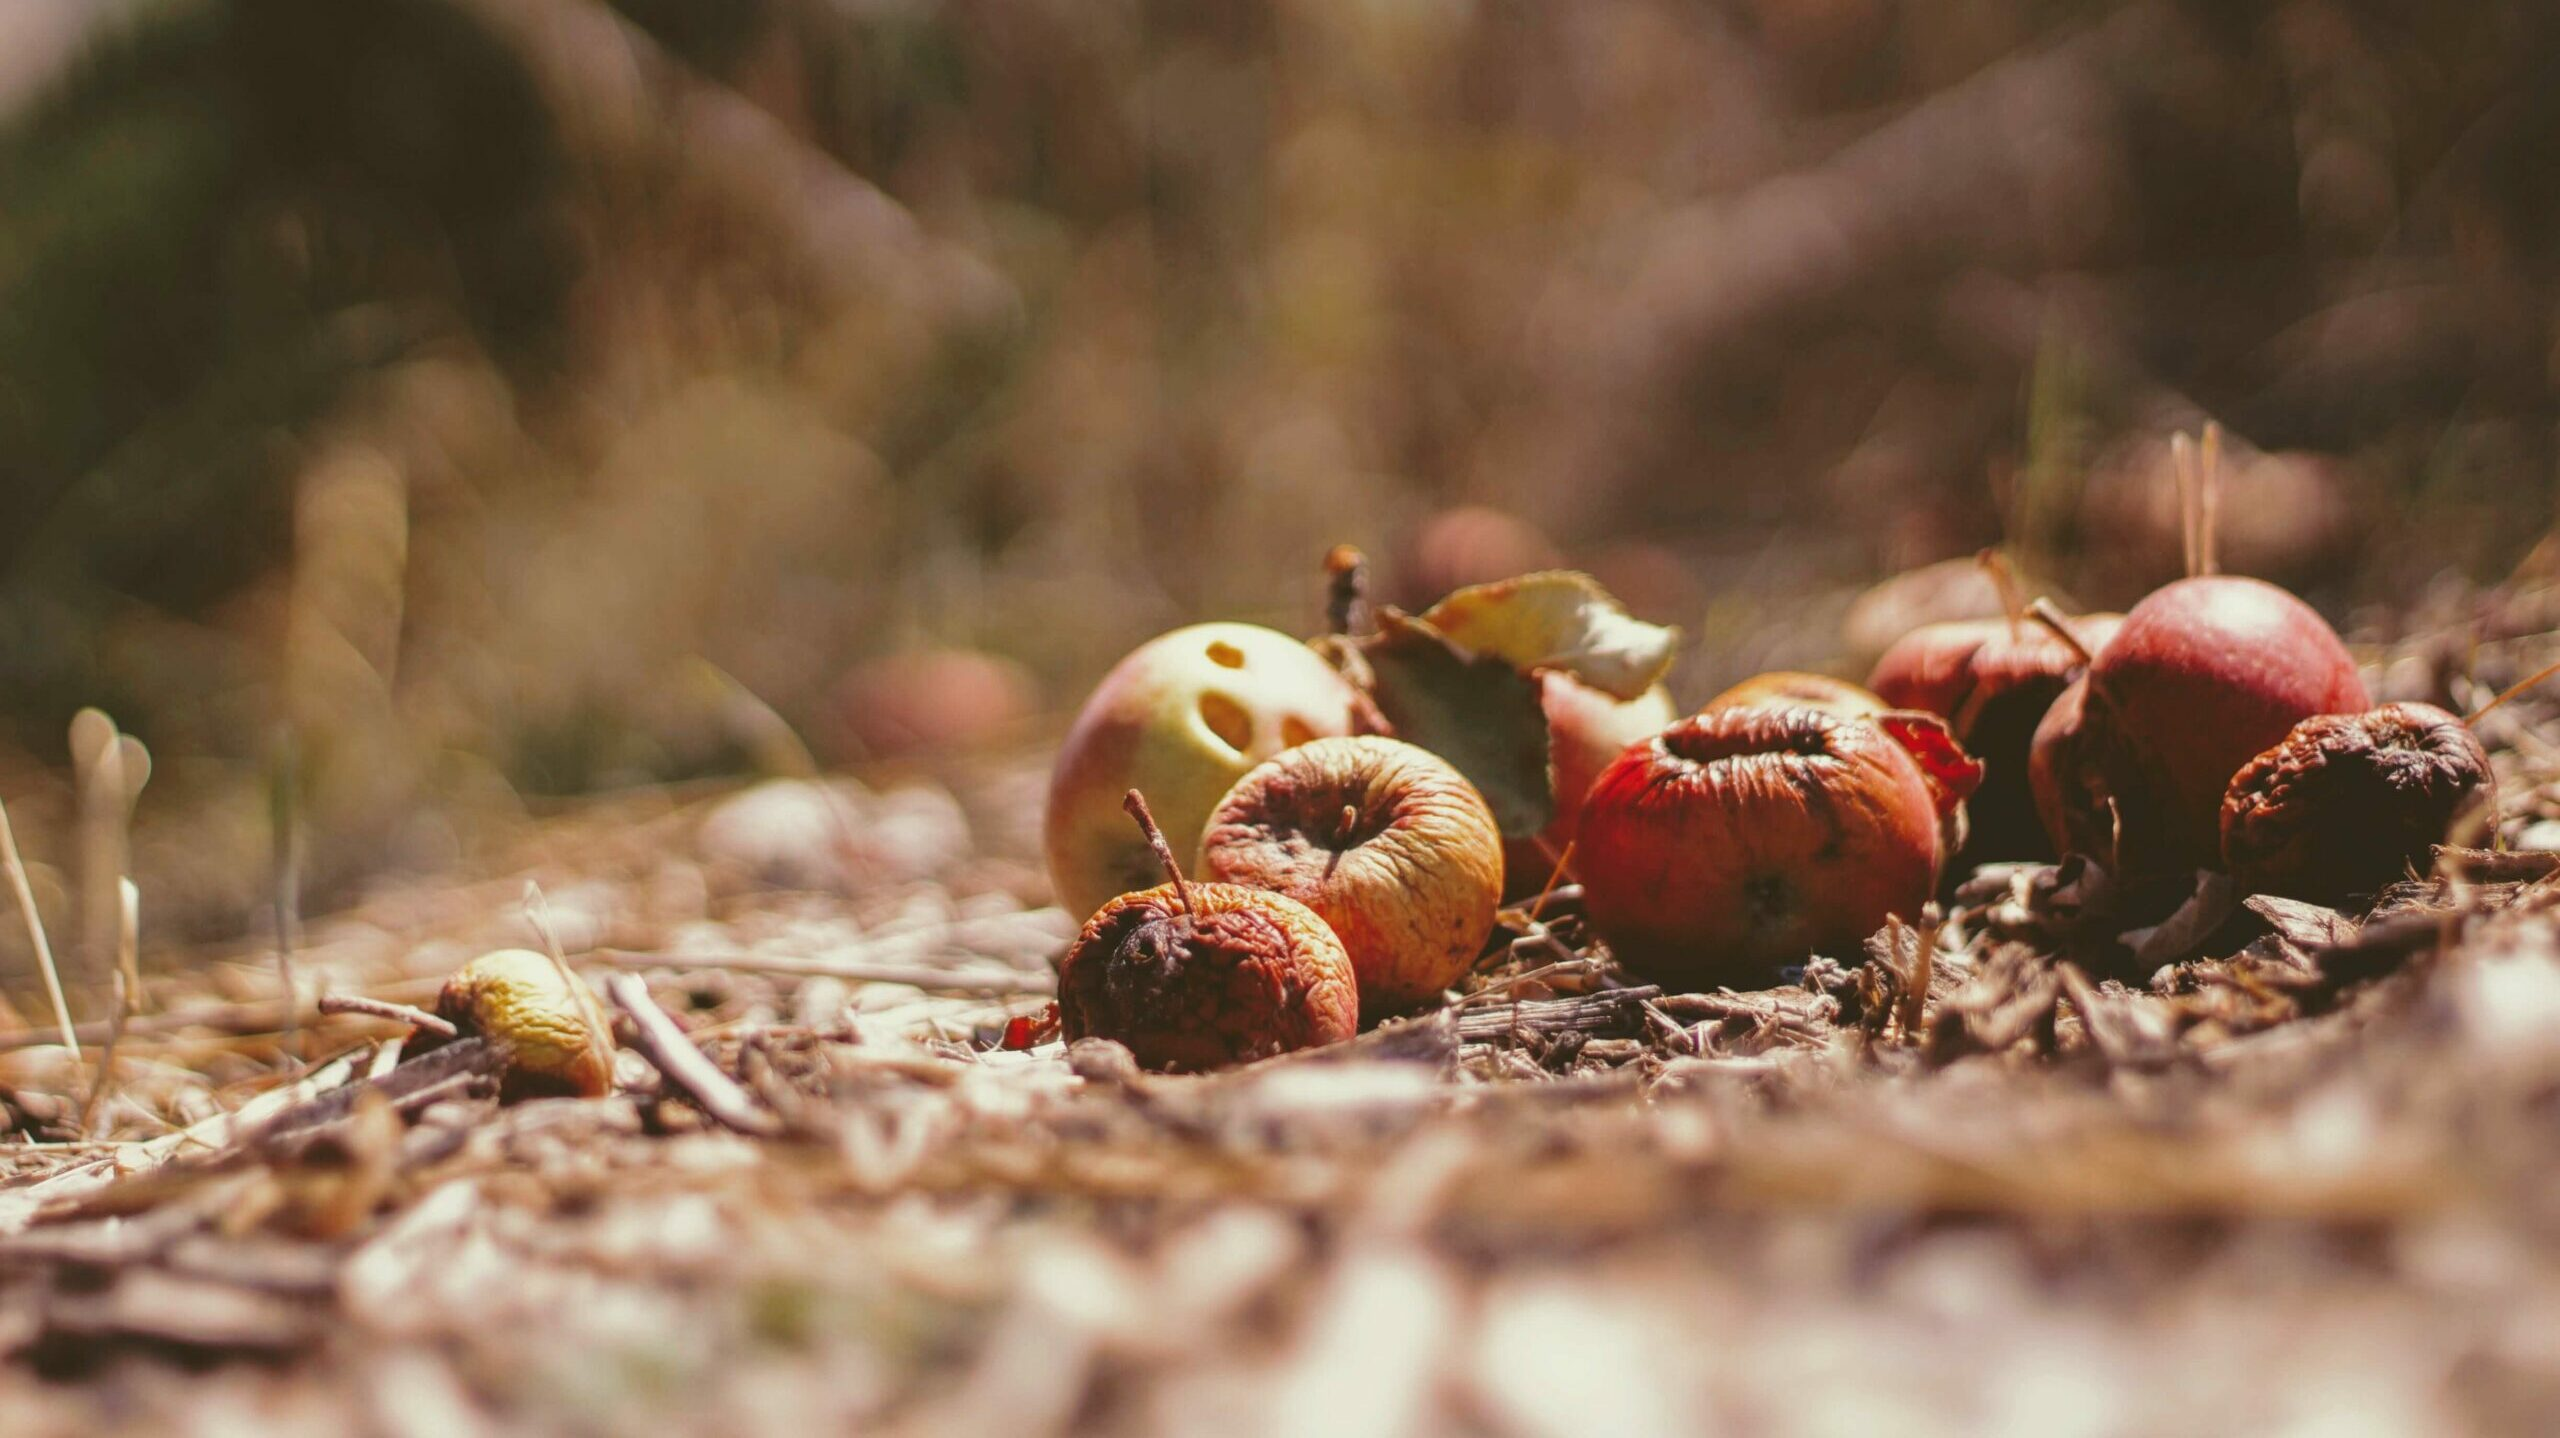 fruits decomposing in soil